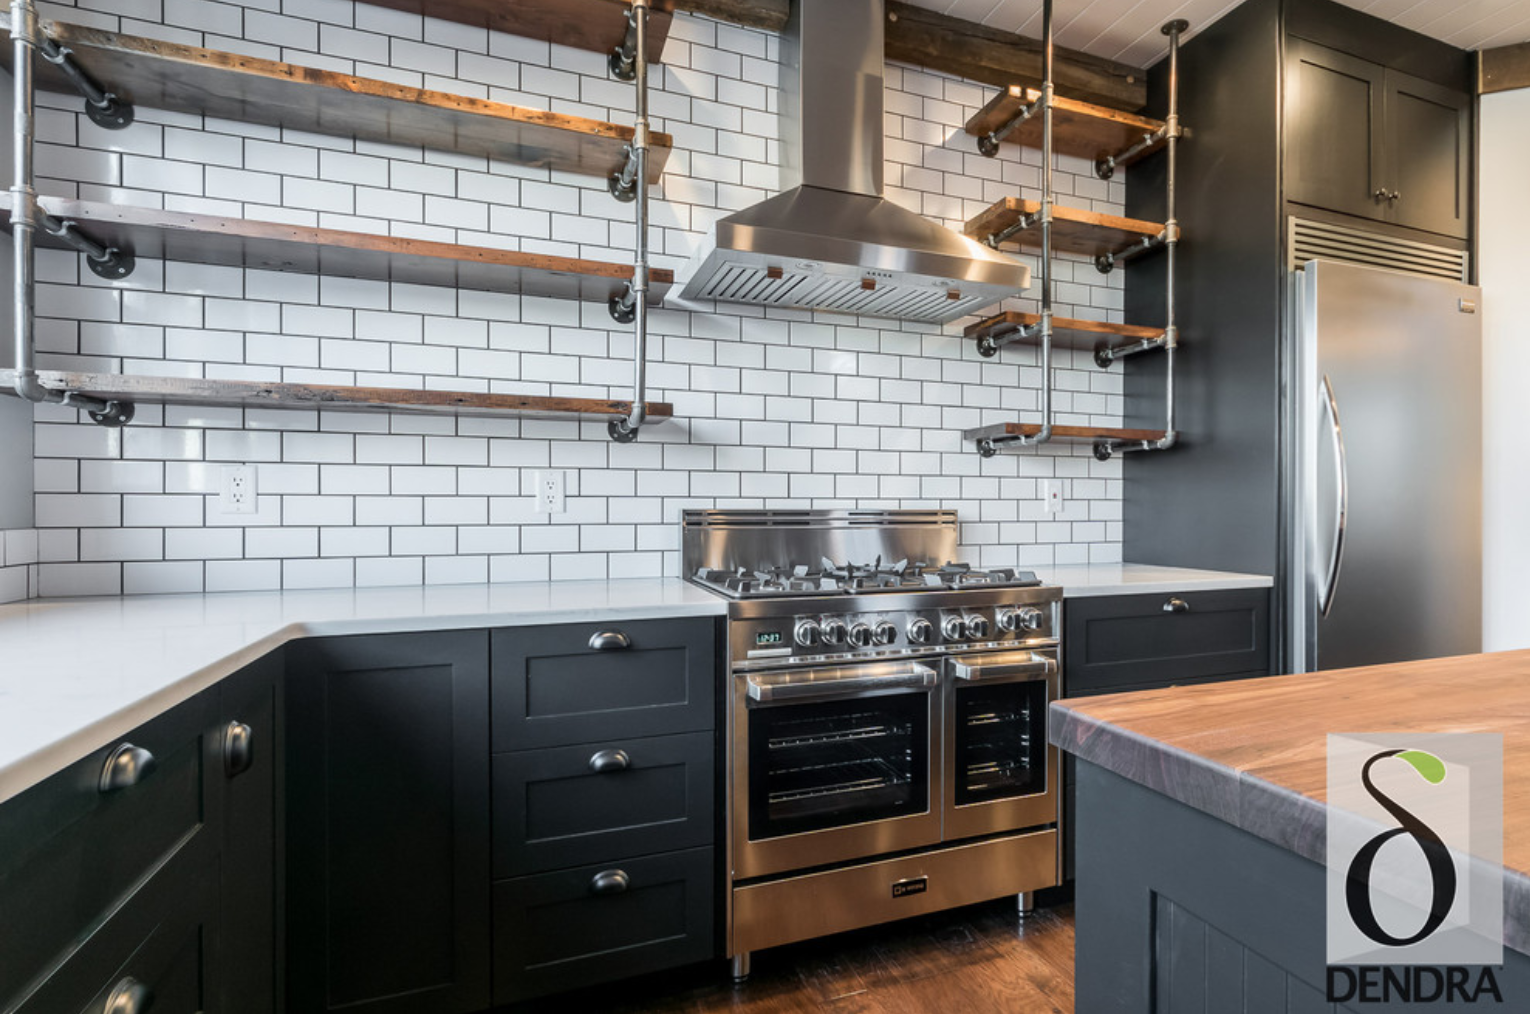 ndustrial and Farmhouse style meet in our #KitchenOfTheWeek